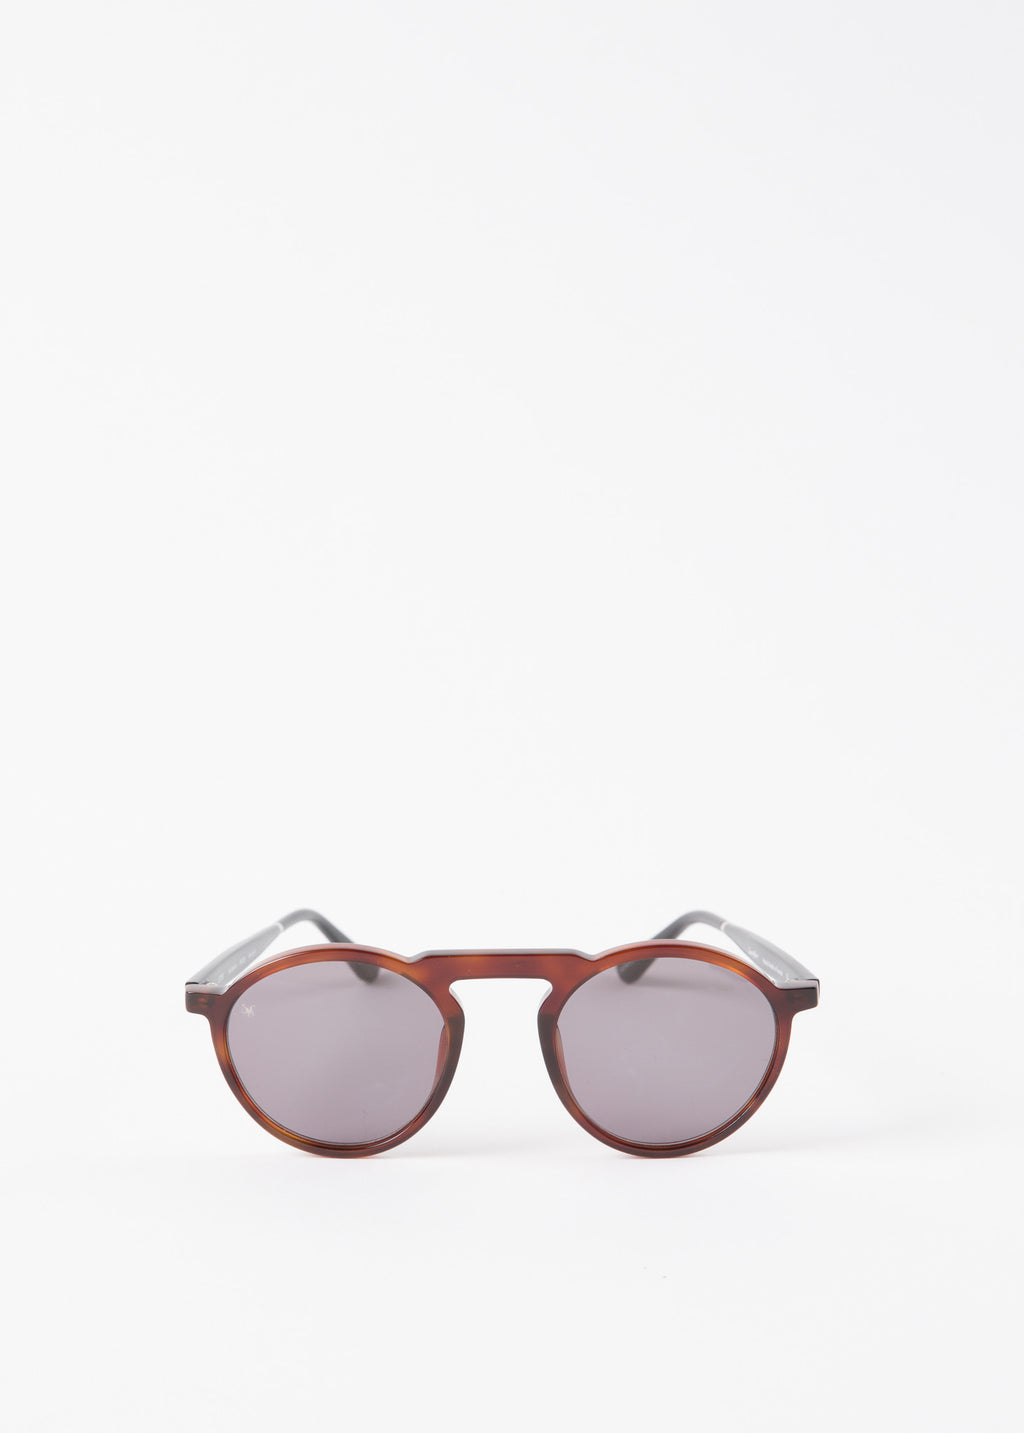 Letter Sunglasses